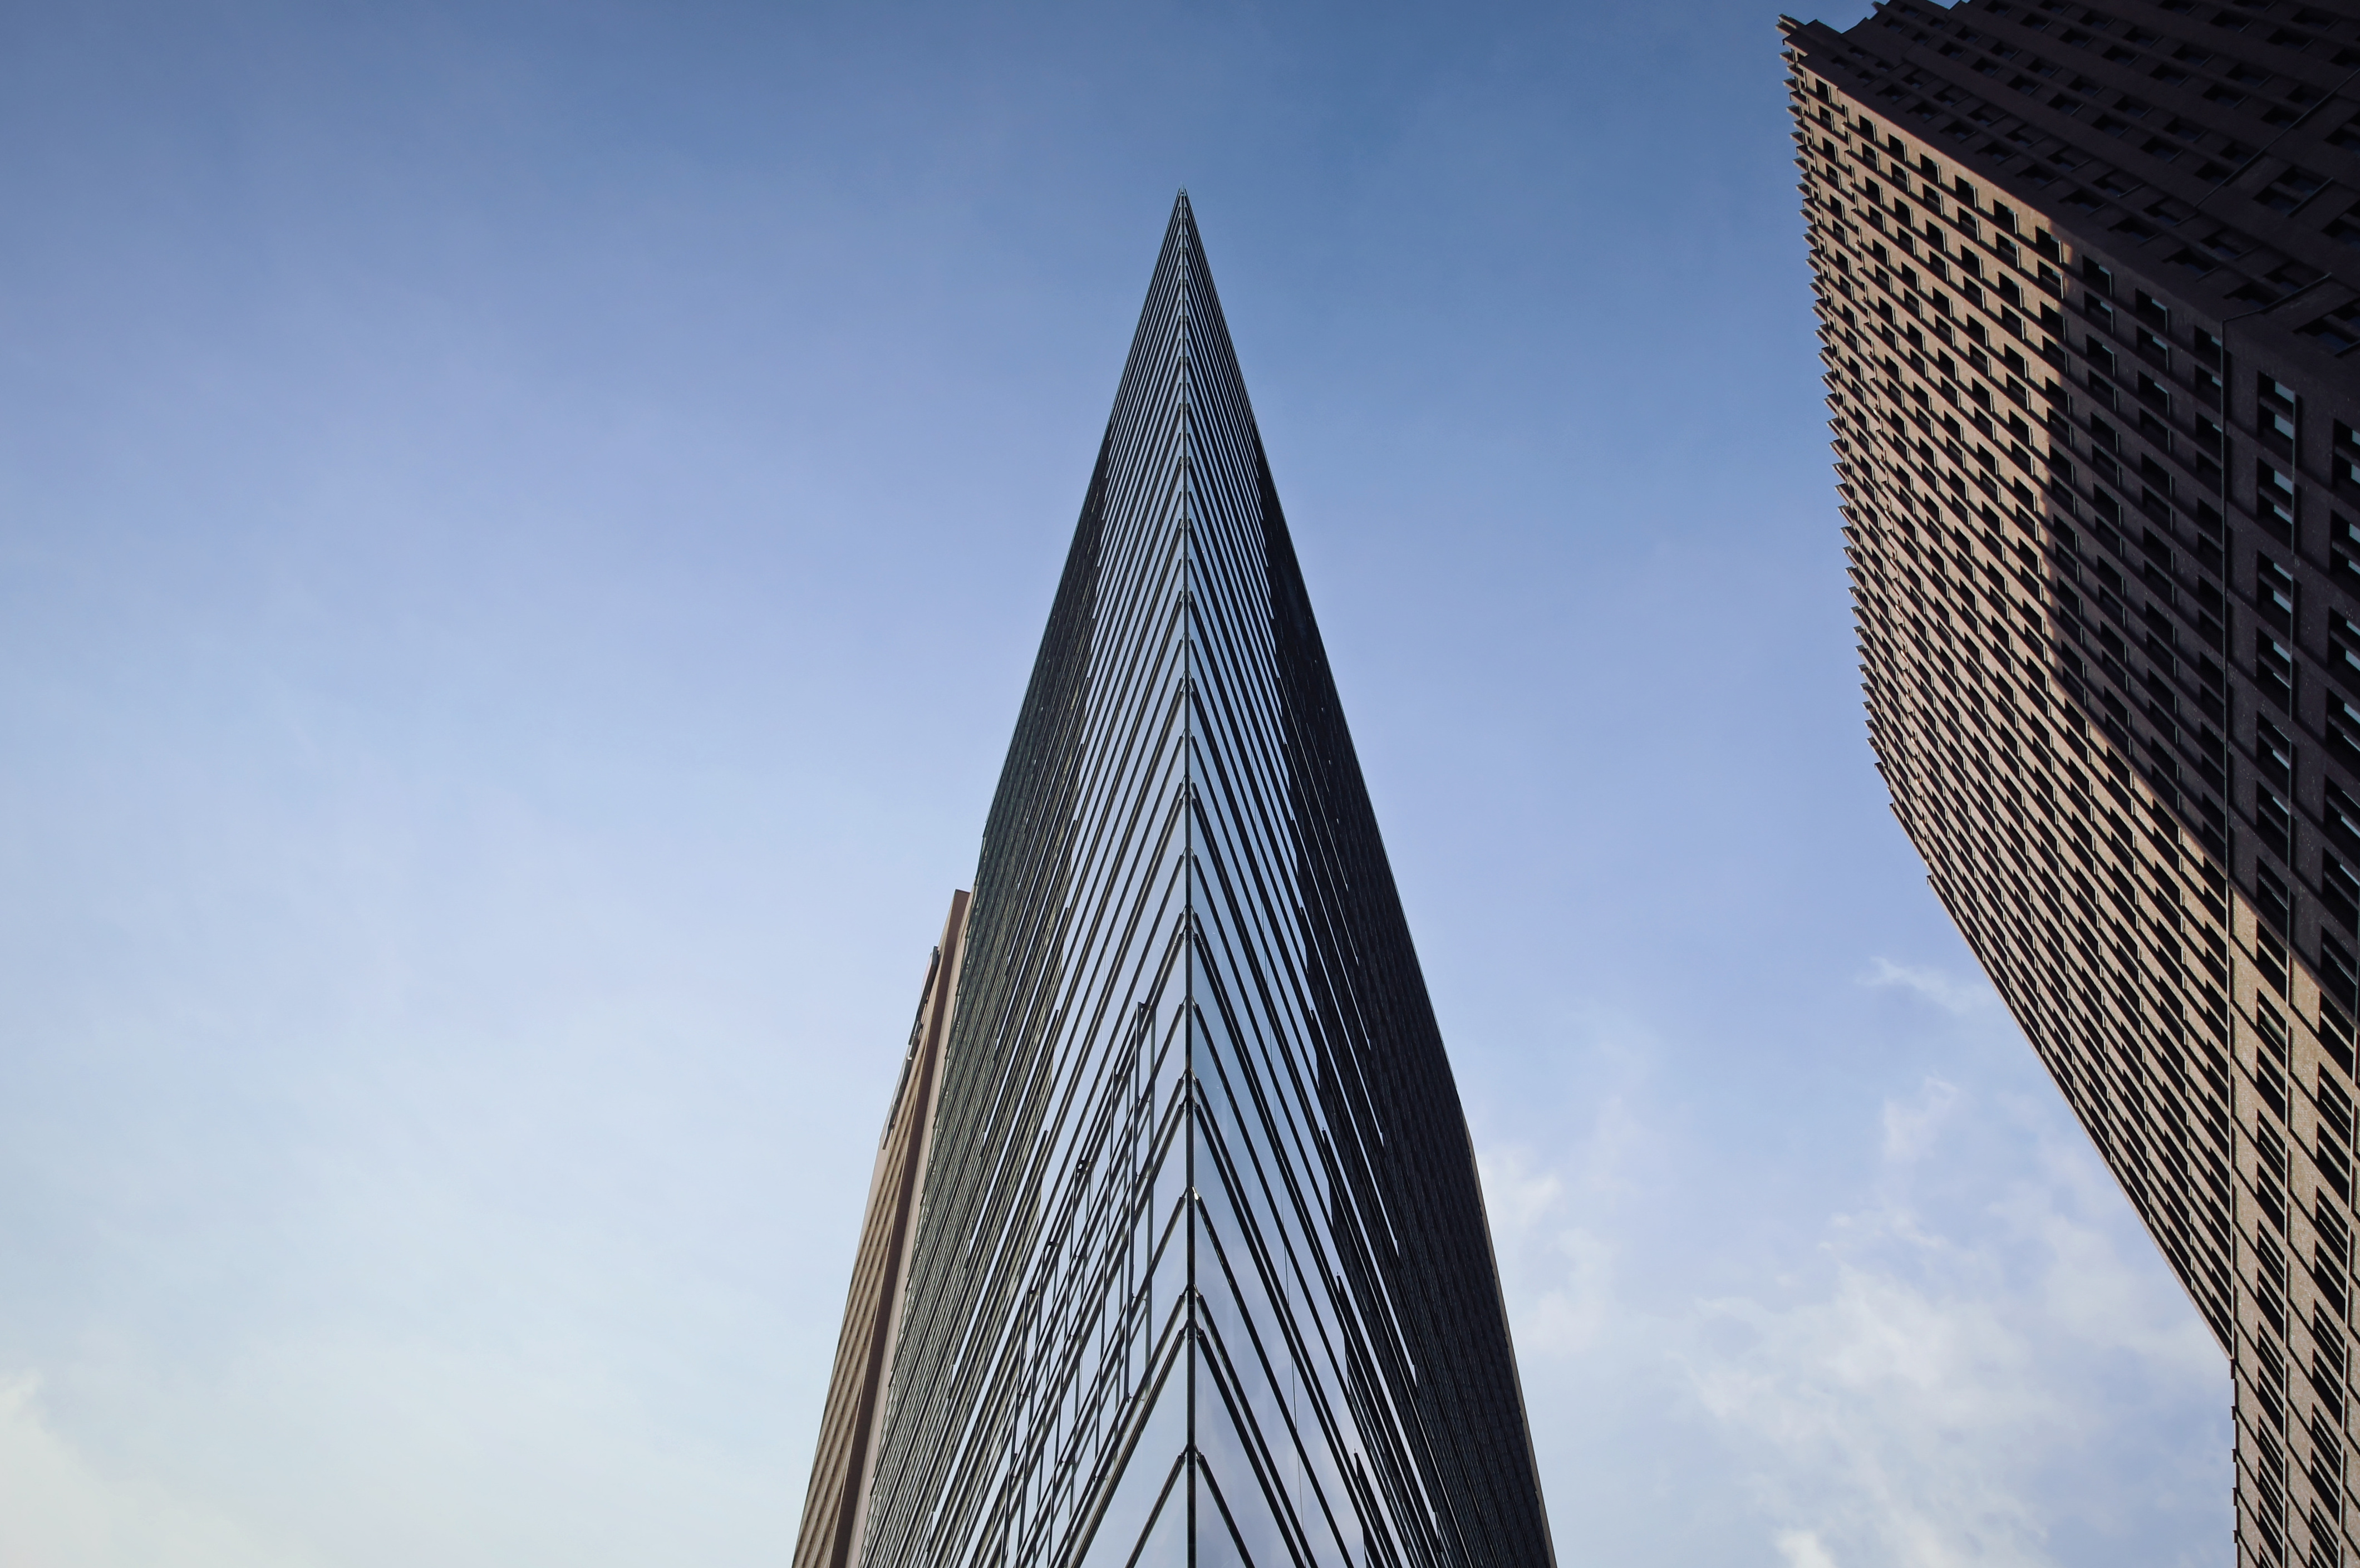 Triangle high-rise building in Berlin - Our Great Photos